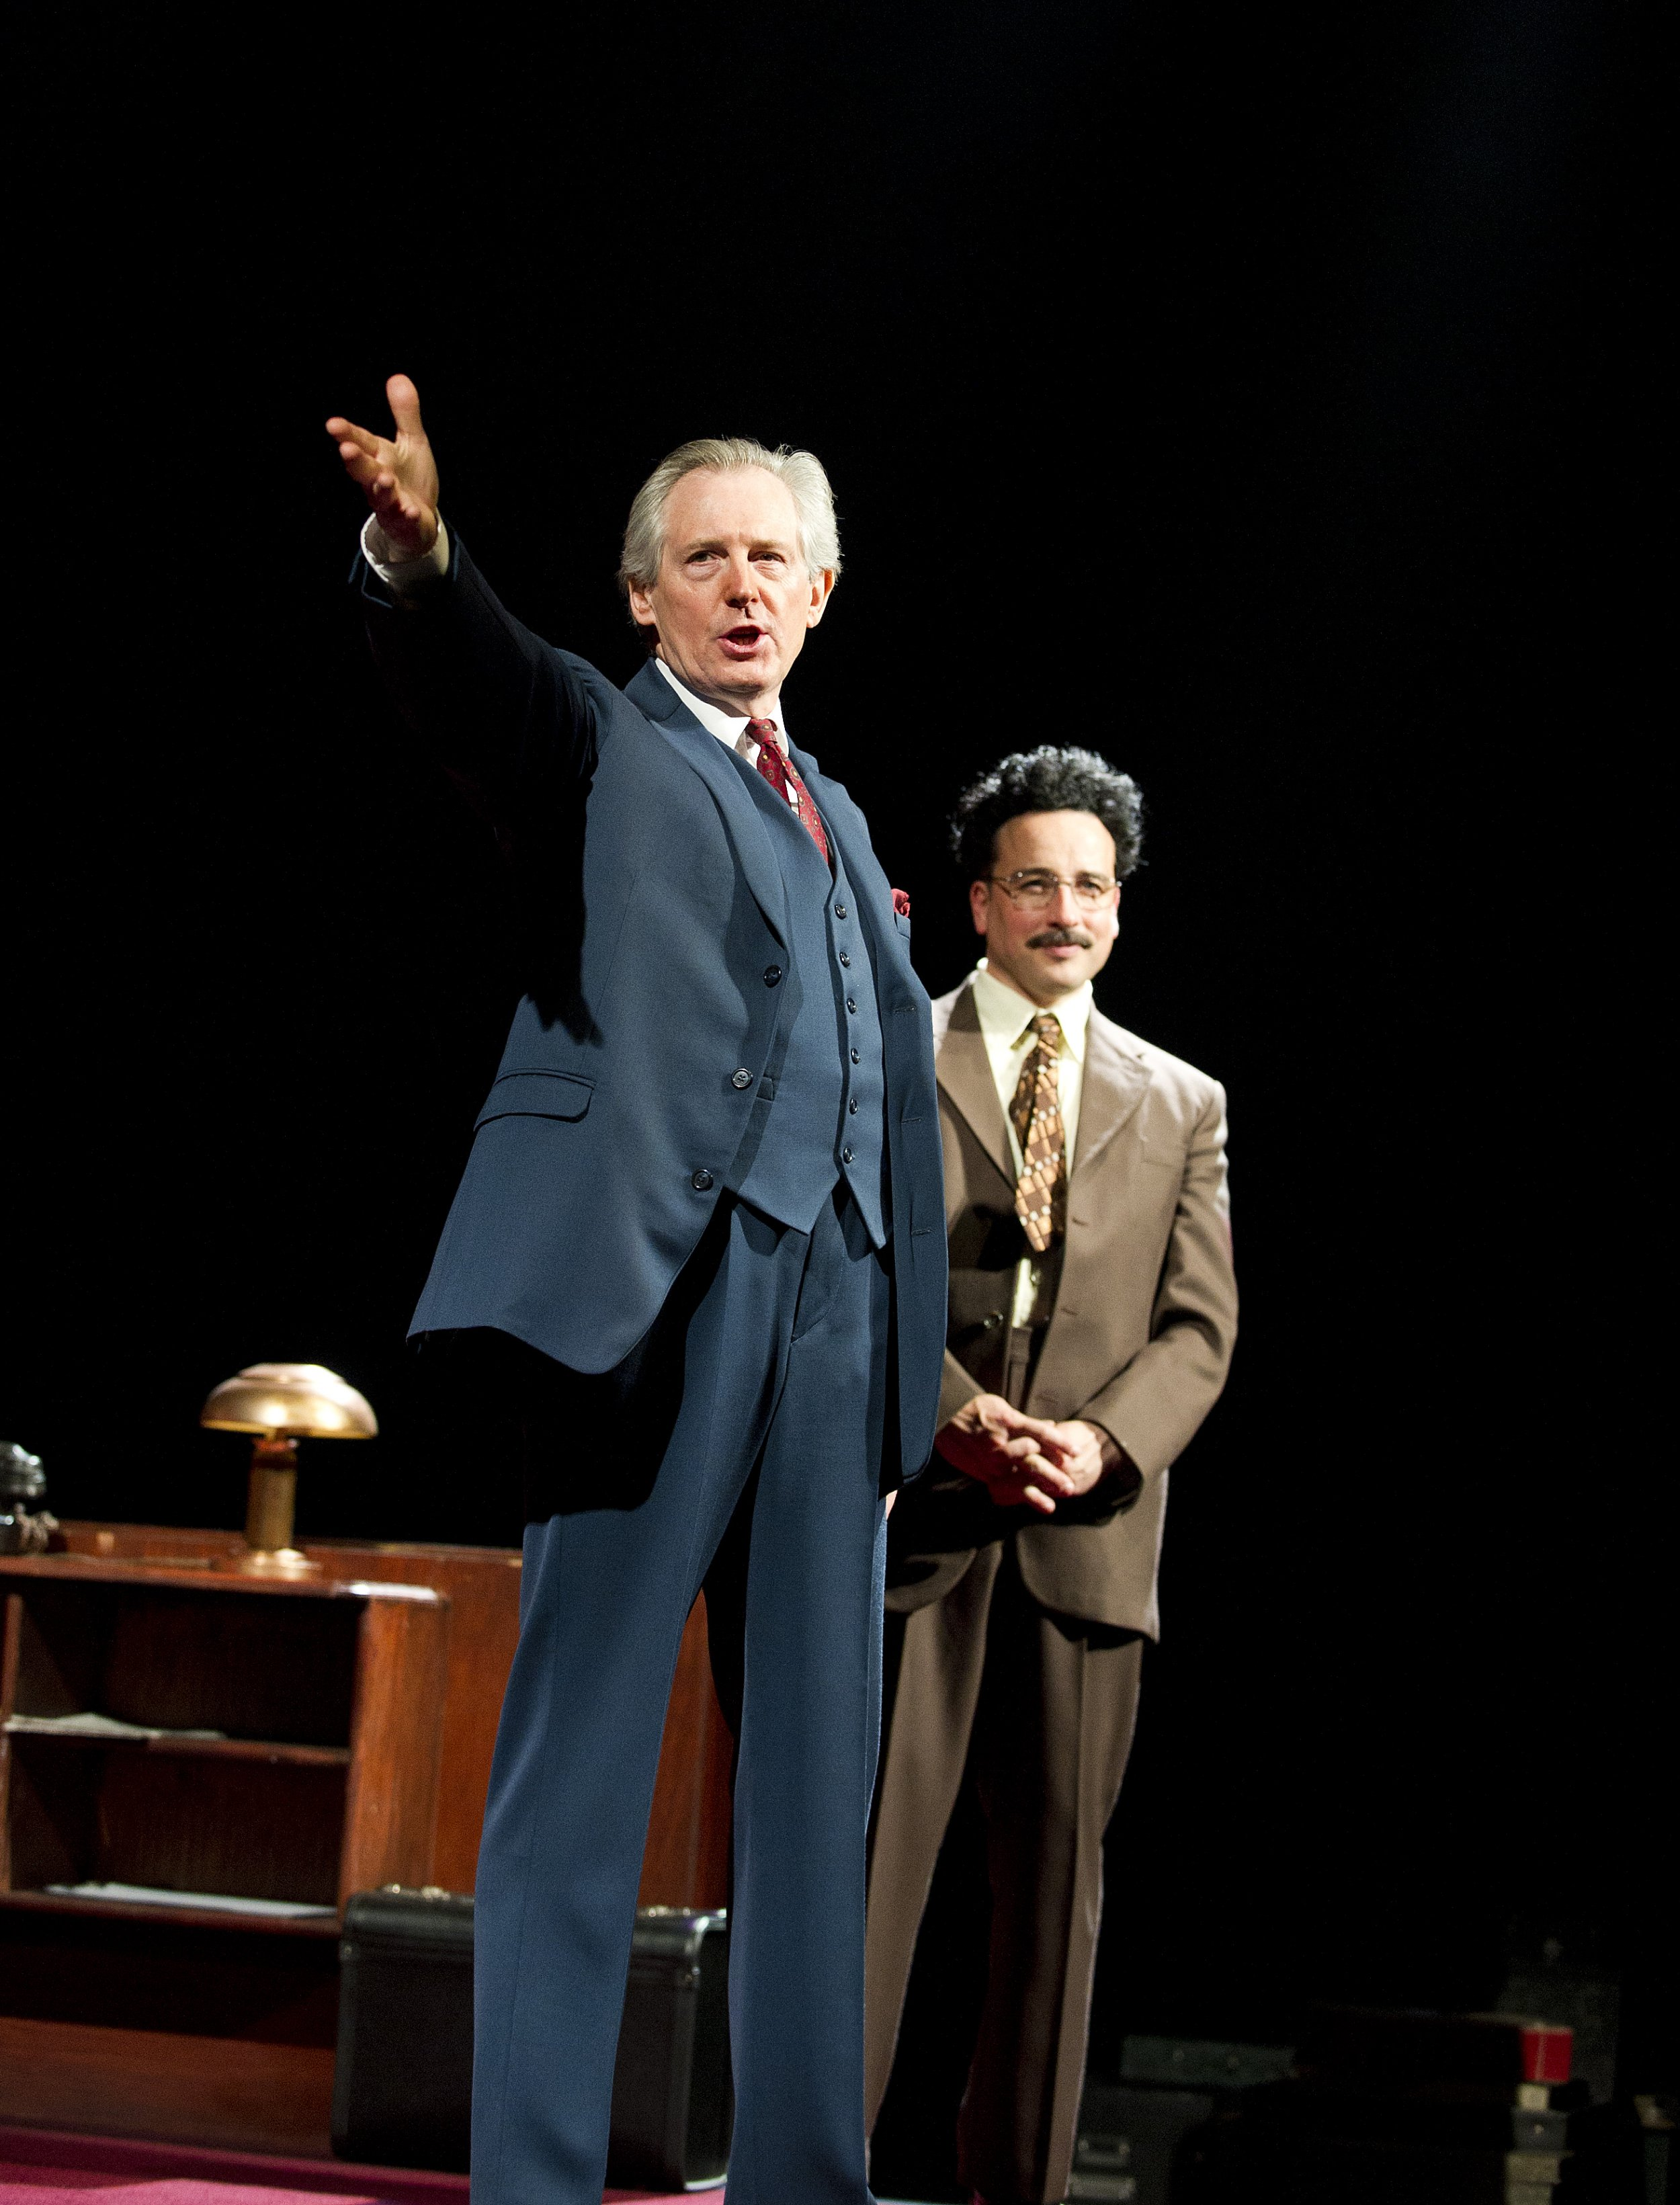 Patrick Drury as Willy Brandt, Aiden McArdle as Gunter Guillaume